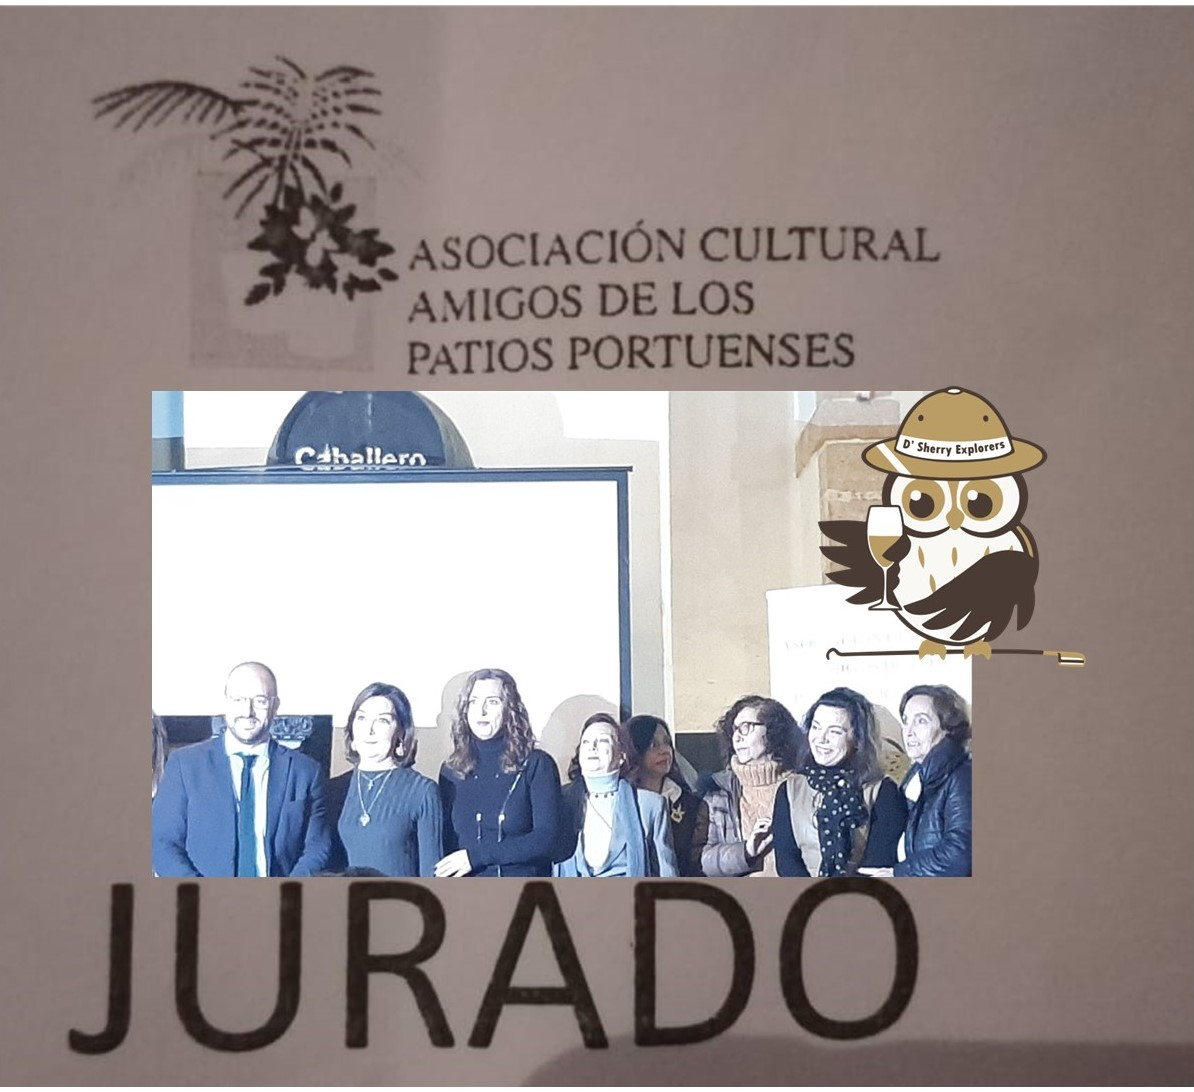 Sherry Explorers serán el jurado de la XXII Fiesta de los Patios Portuenses 2020./Sherry Explorers will be the judges for the XXII Fiesta of the Puerto Patios 2020.